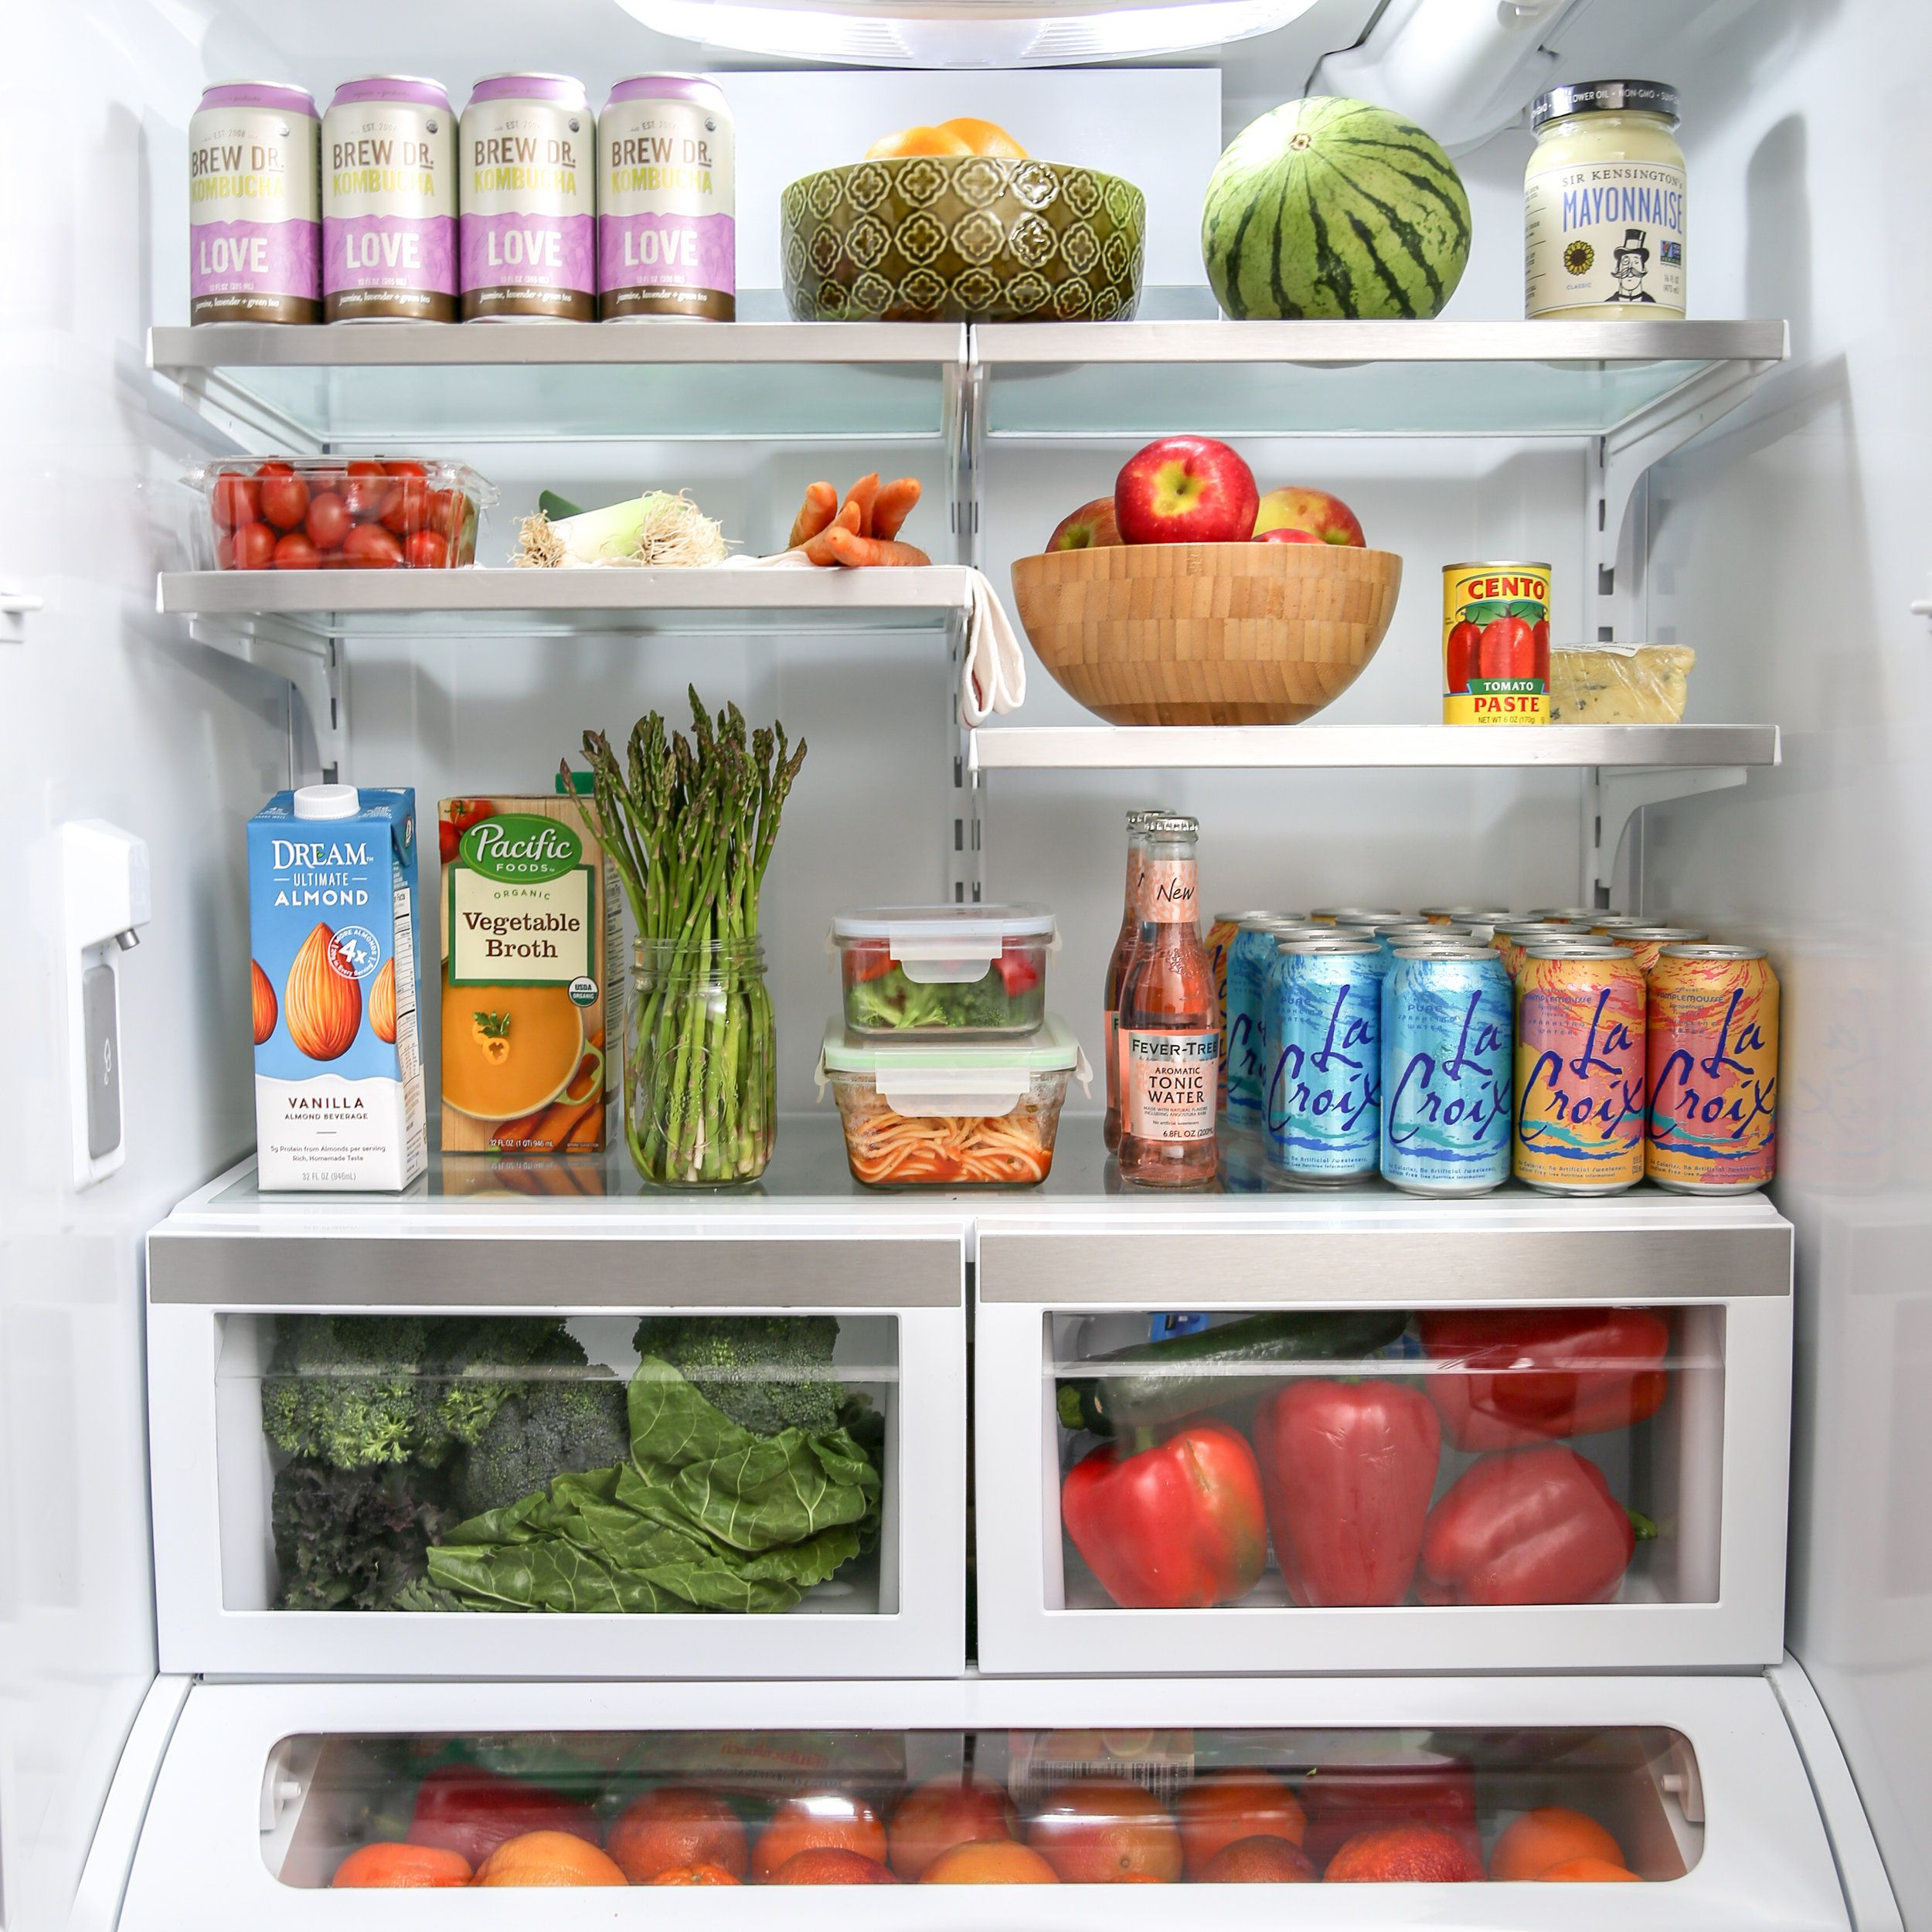 How To Clean Out Your Fridge A Checklist Clean Fridge Clean